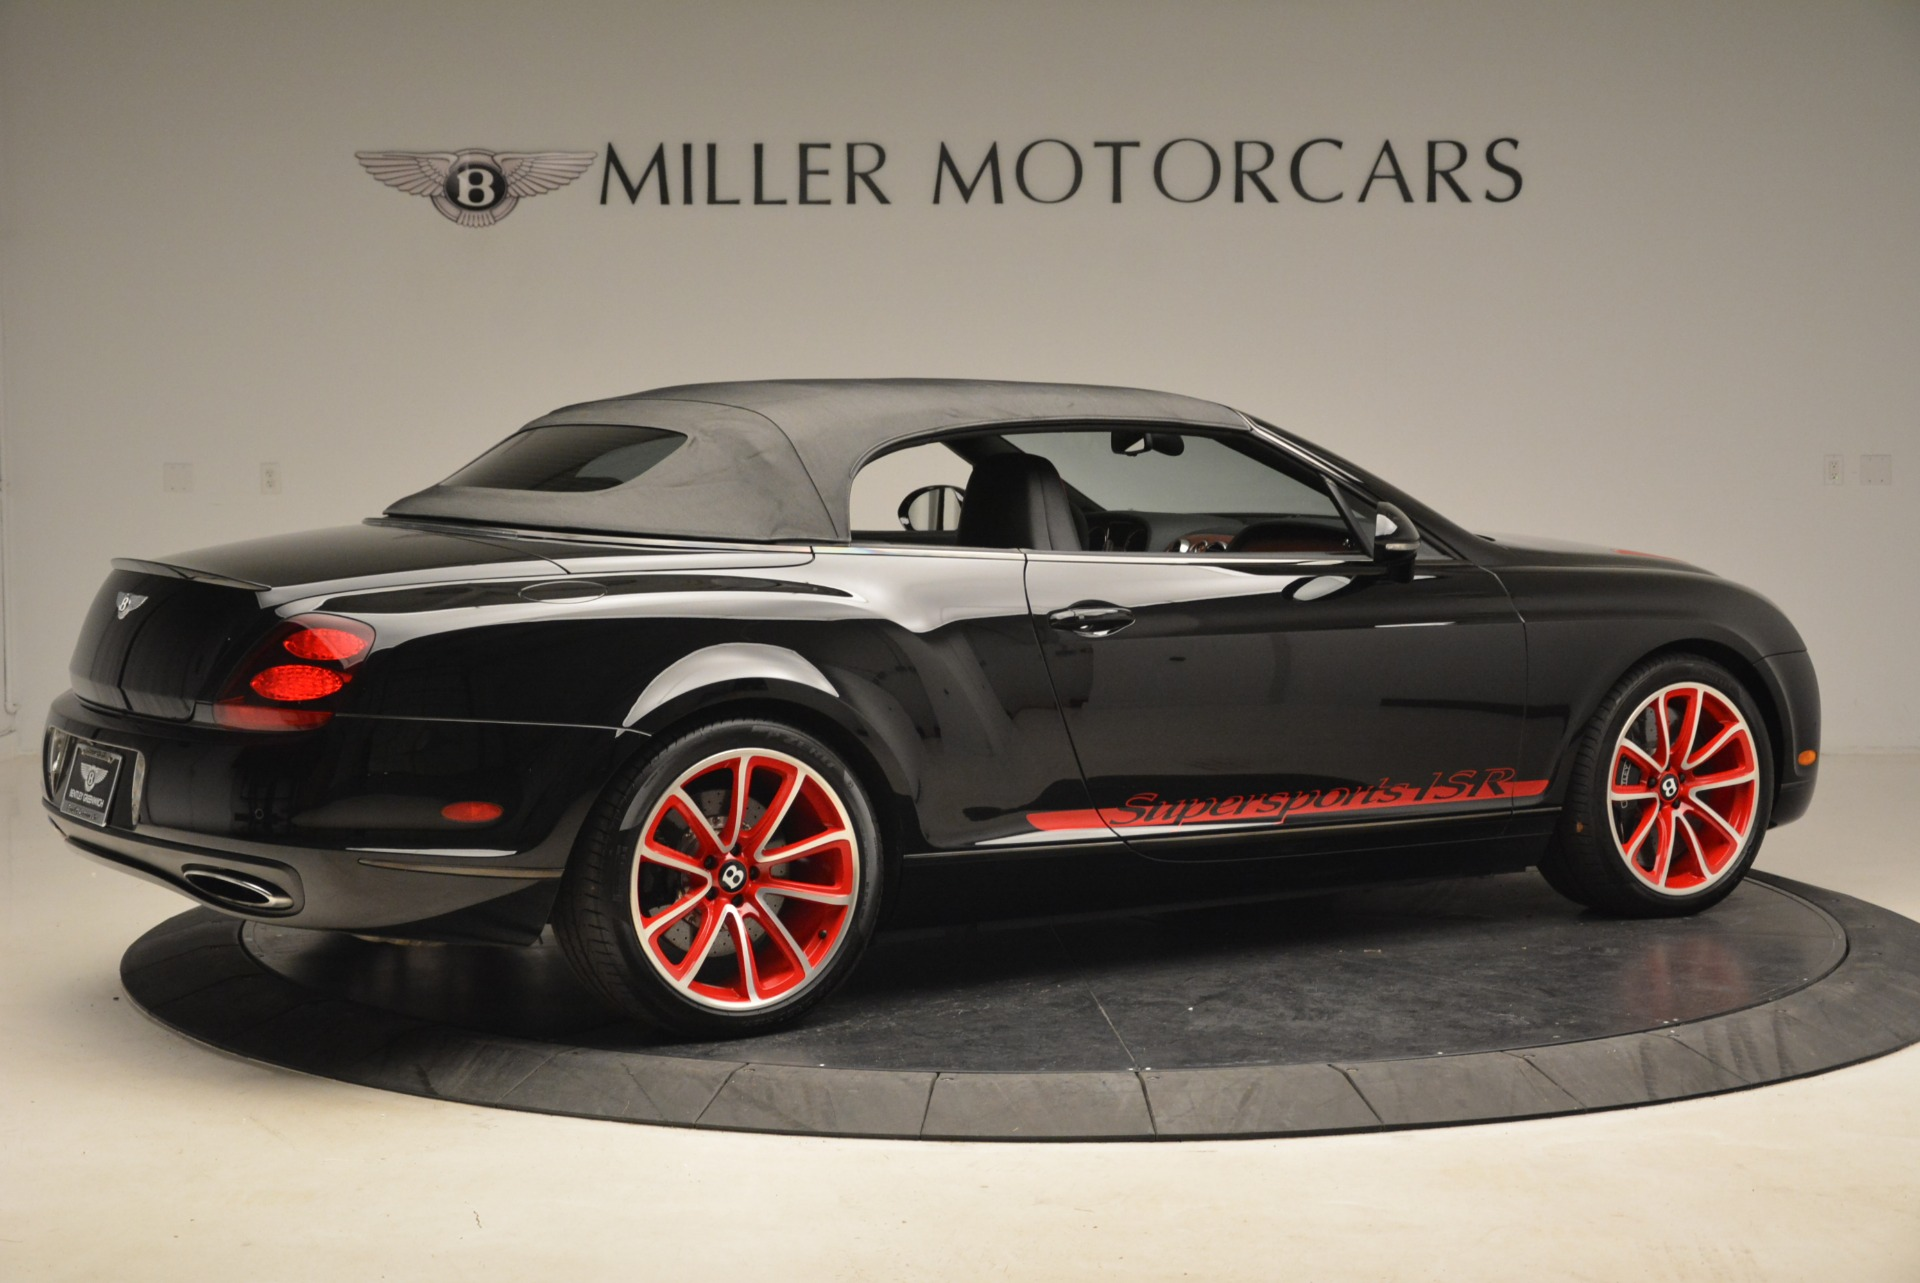 Used 2013 Bentley Continental GT Supersports Convertible ISR For Sale In Westport, CT 2151_p21